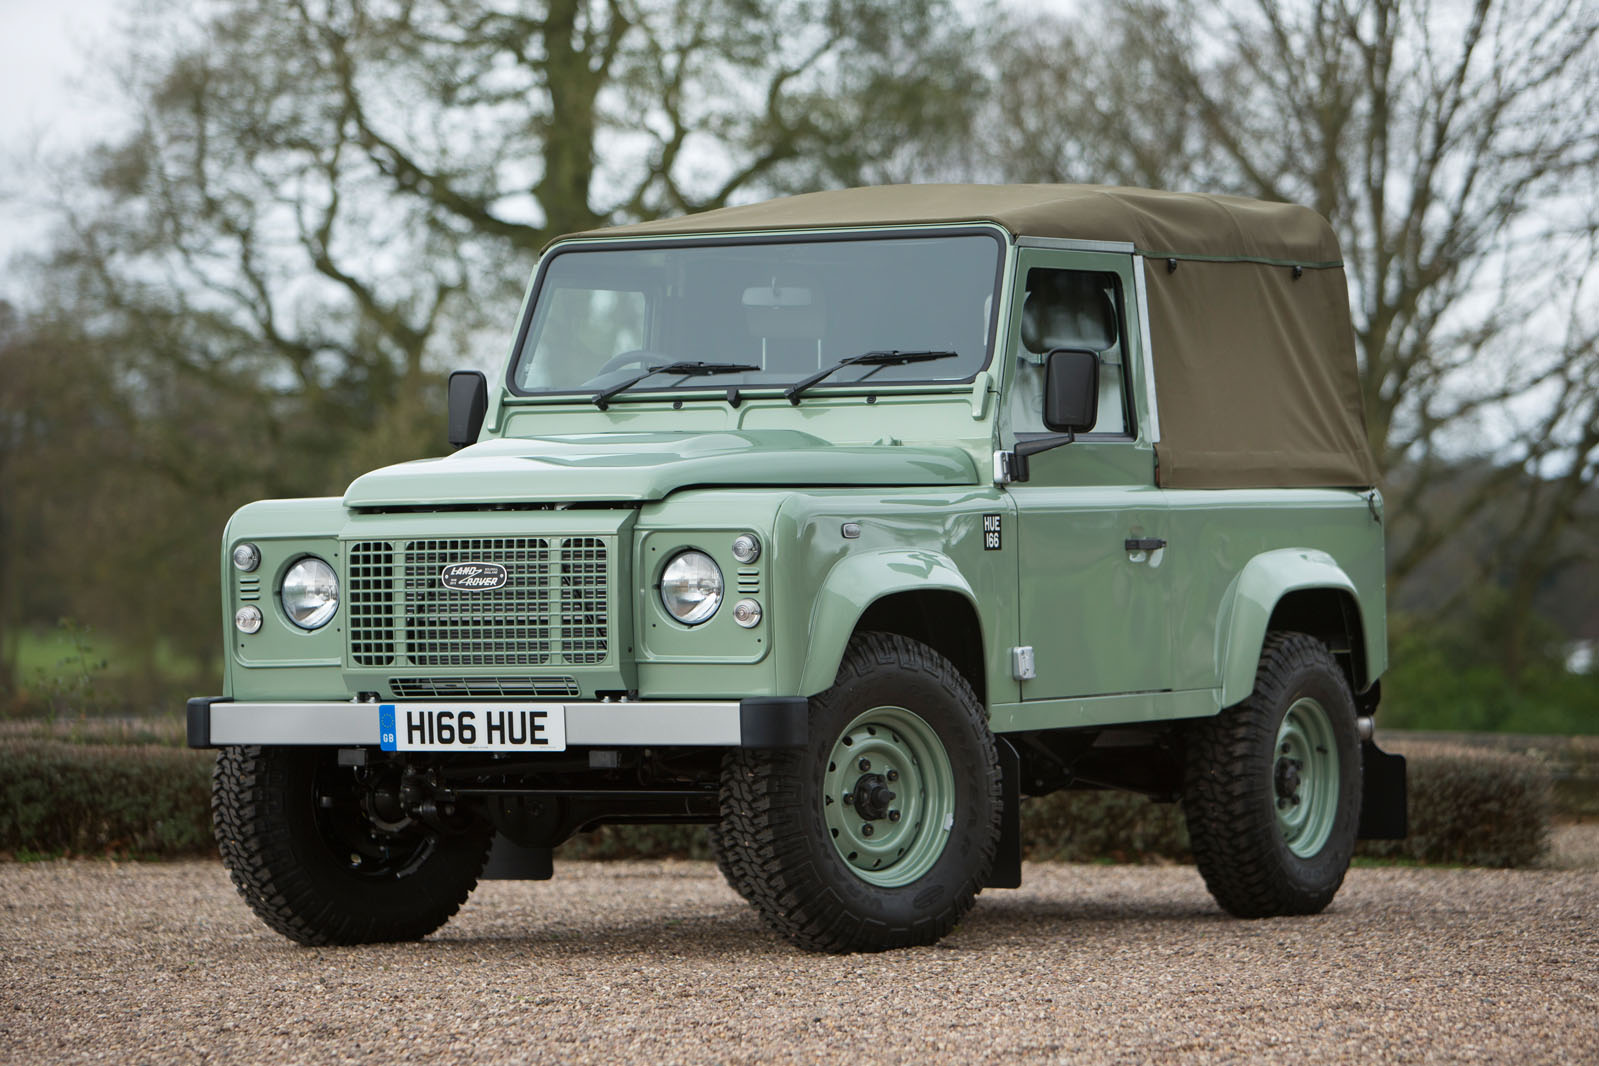 The Last Ever Land Rover Defender Full Gallery And Specifications 90 Autocar